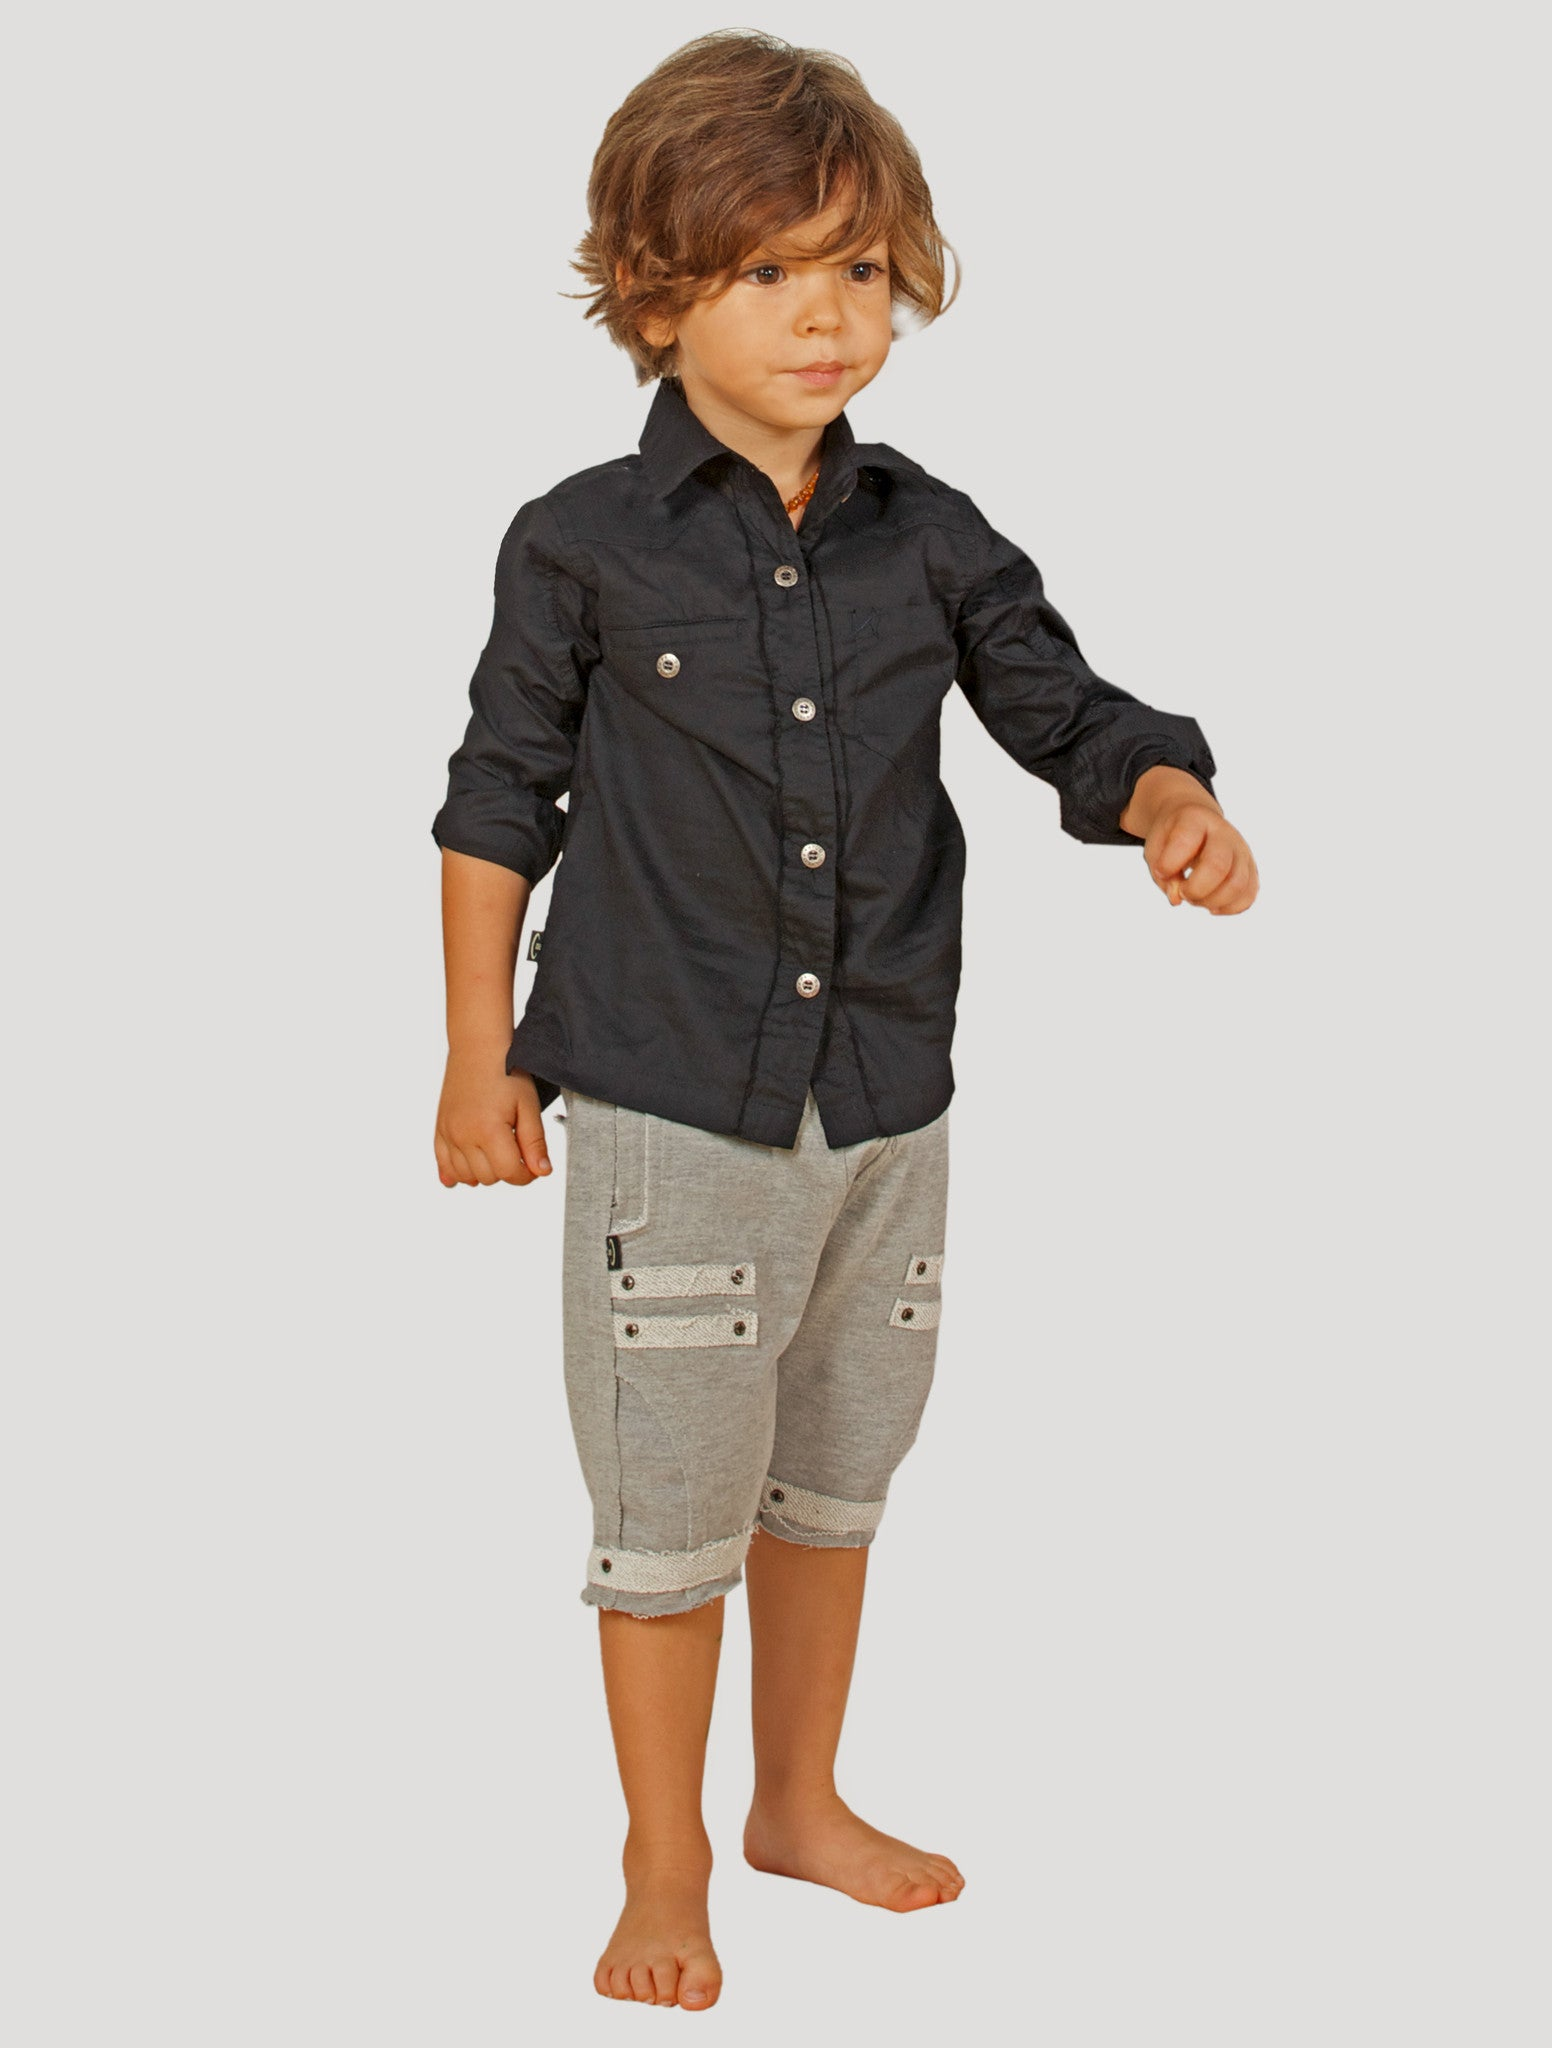 Sufi Long Sleeves Shirt (Kids)